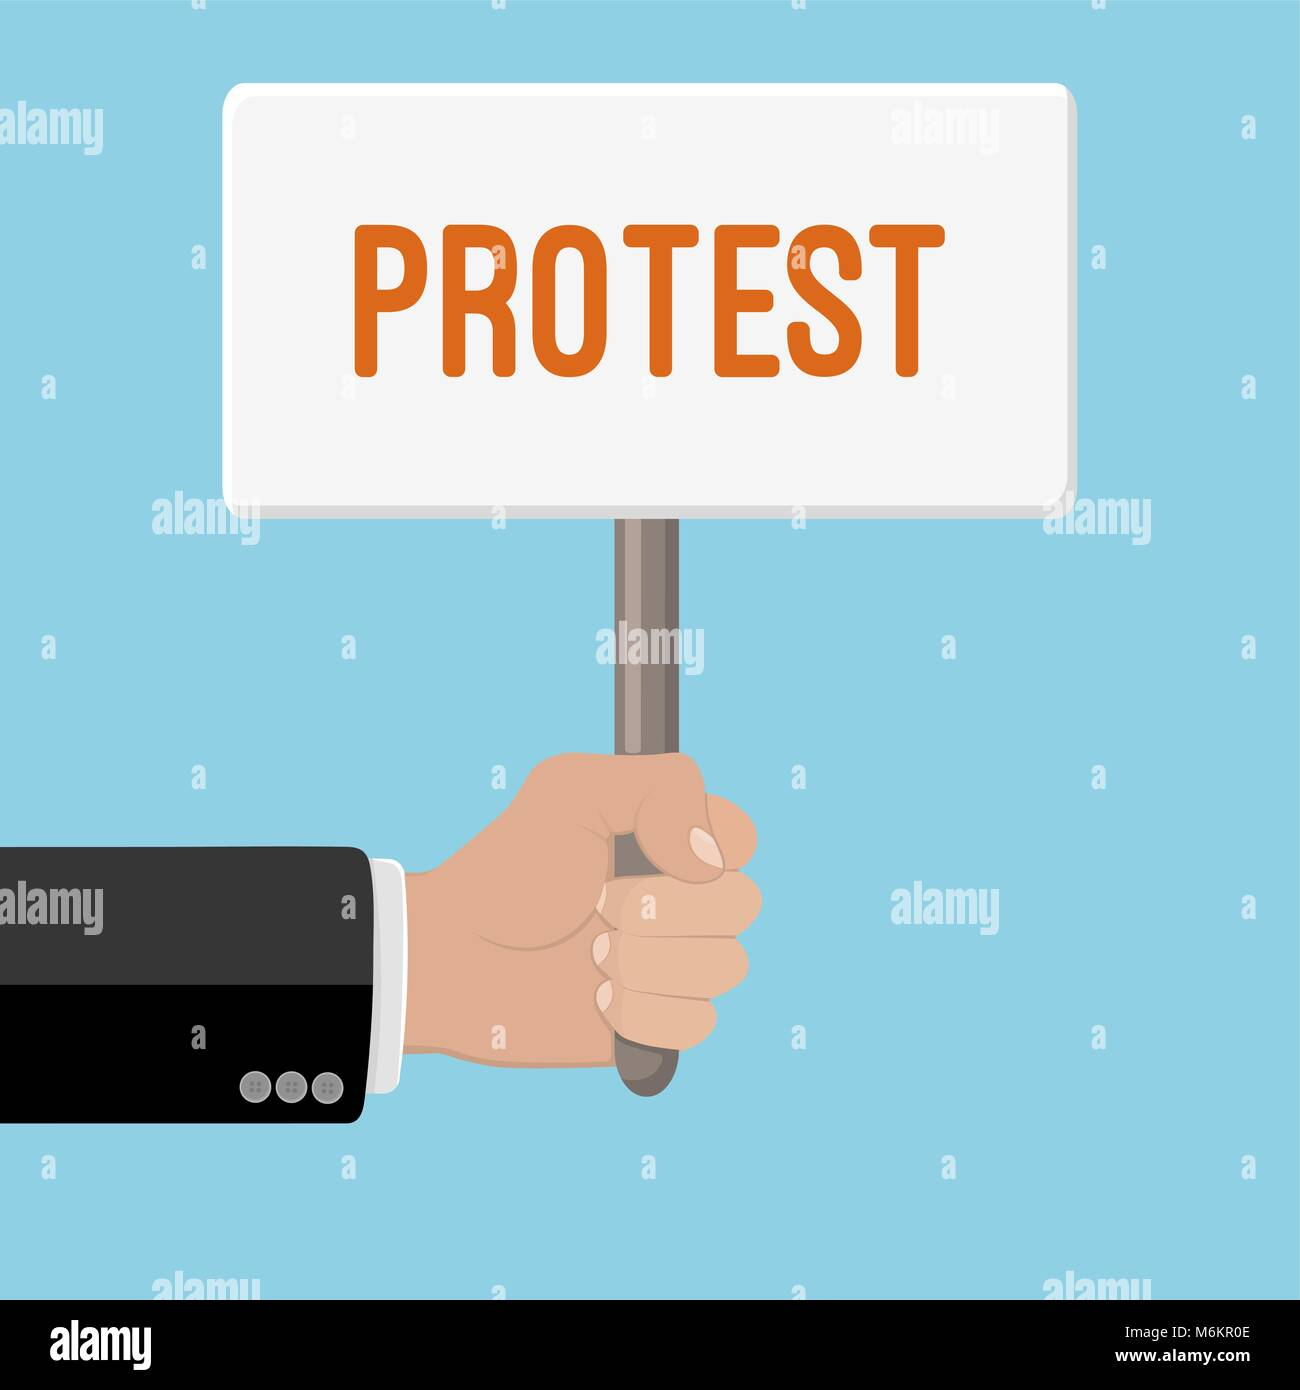 Realistic hand with clenched fist and plate ptotest. Flat design. Fist of revolution and protest. Agitation concept. - Stock Vector